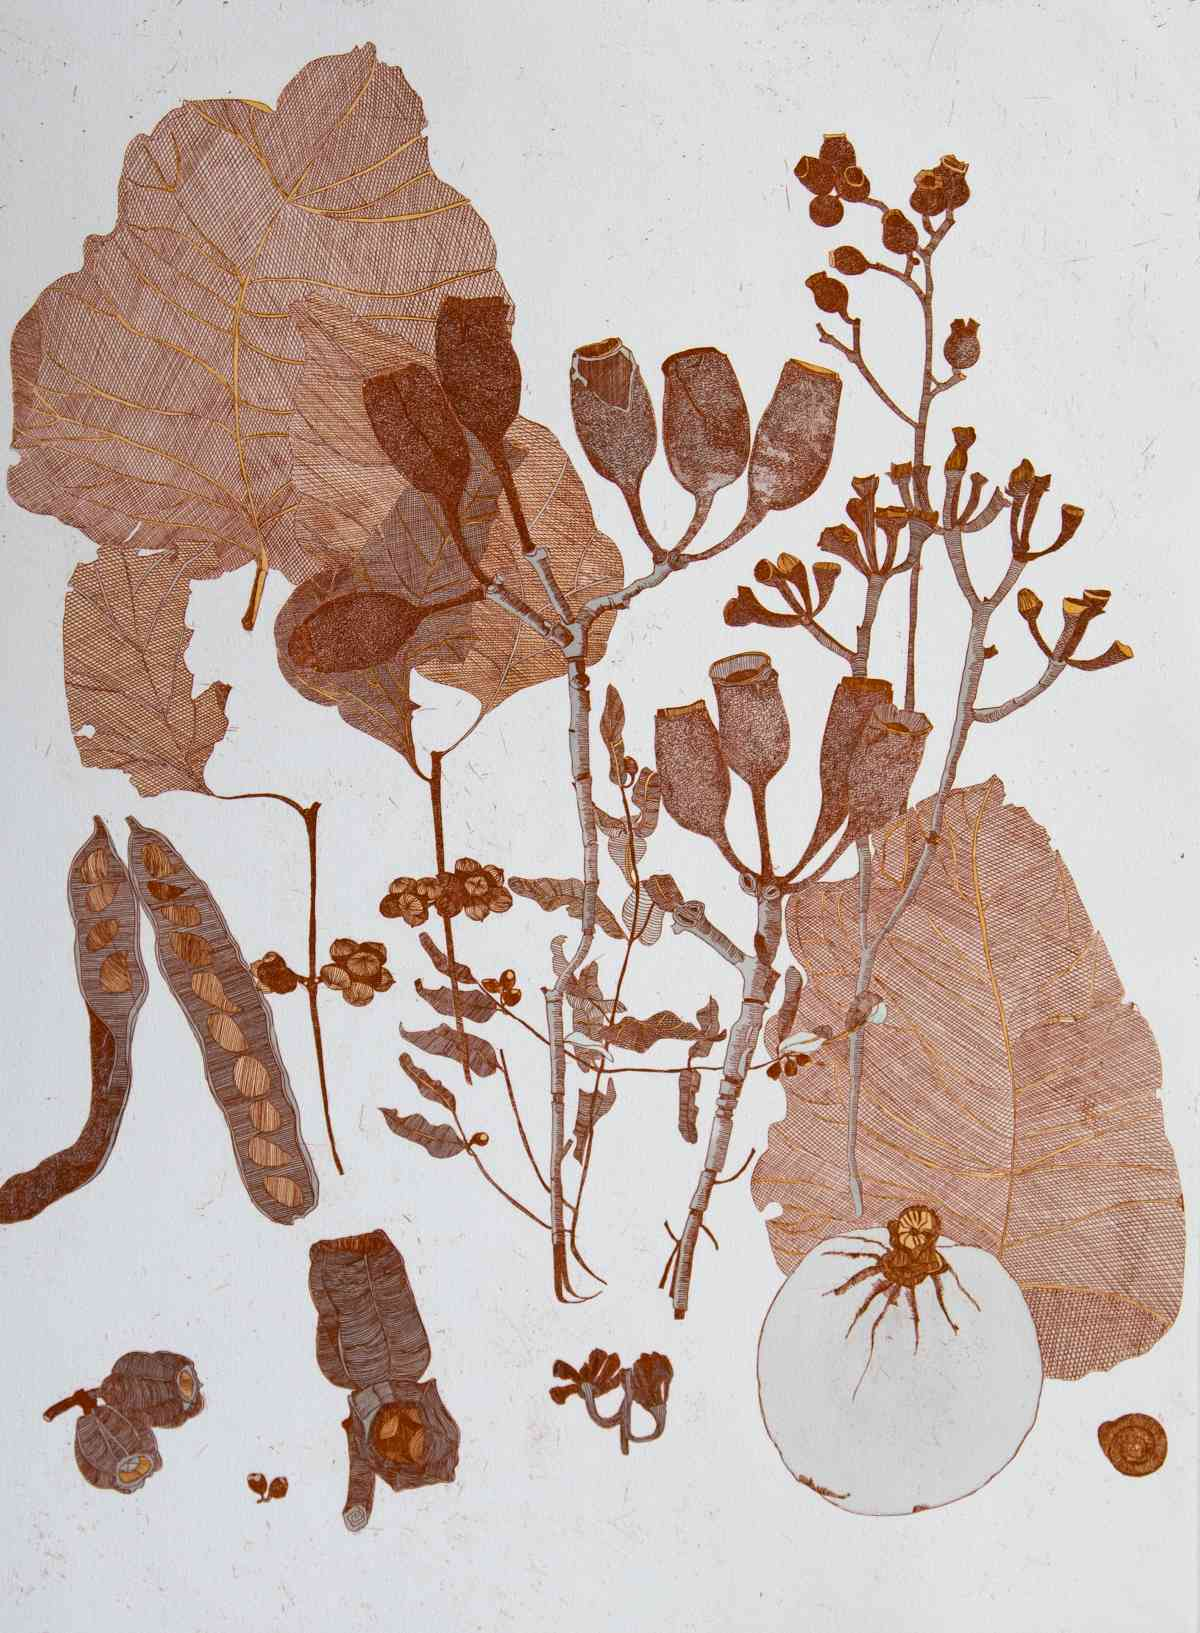 Collected specimens, Kimberley Region_etching, edition of 15_60 x 45cm